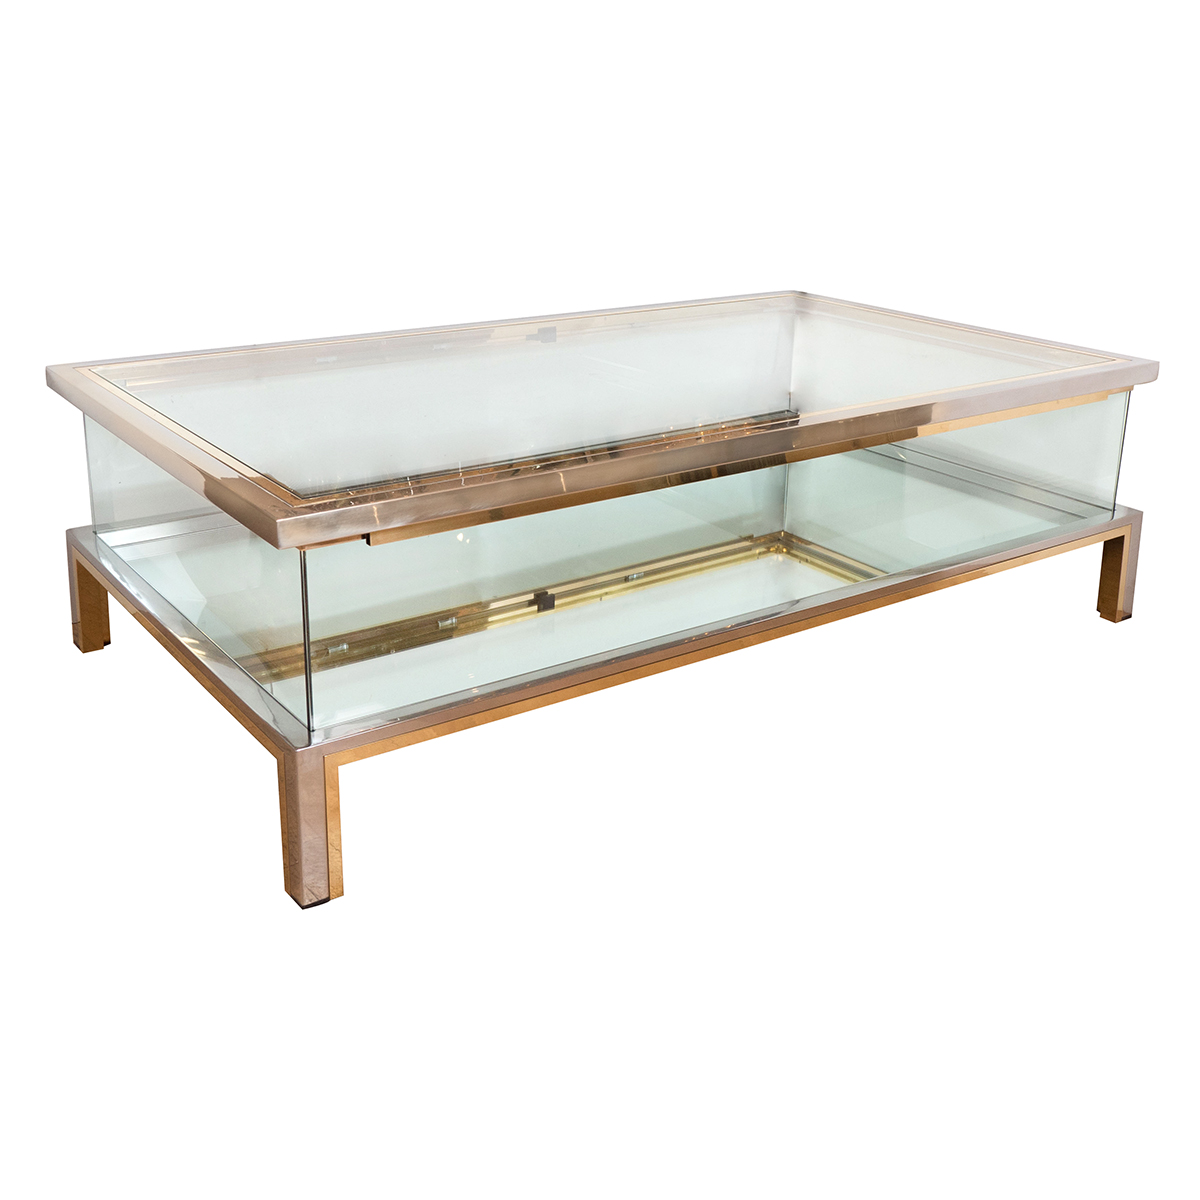 Rectangular Brass, Nickel And Glass Coffee Table